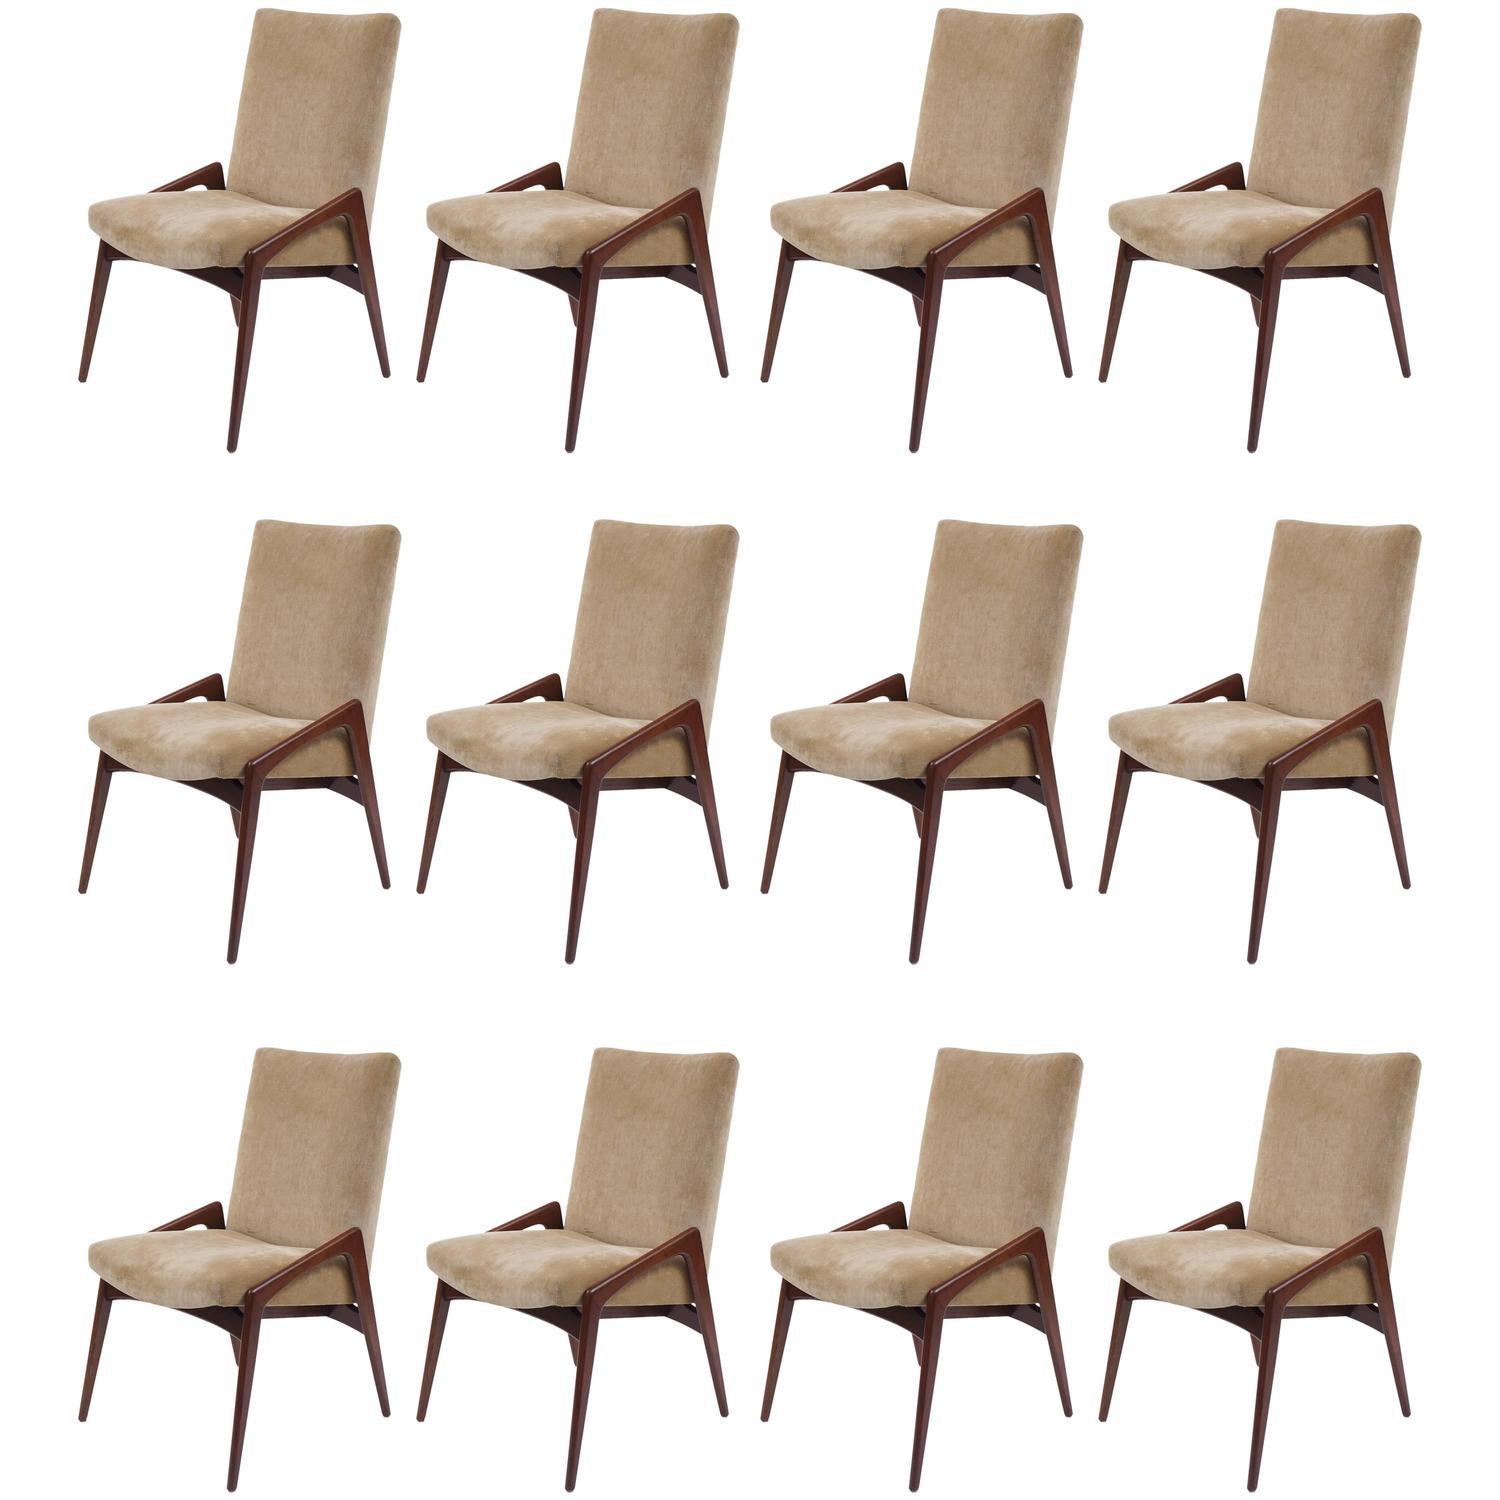 Set of 12 mid century modern upholstered dining chairs at for Upholstered dining chairs contemporary